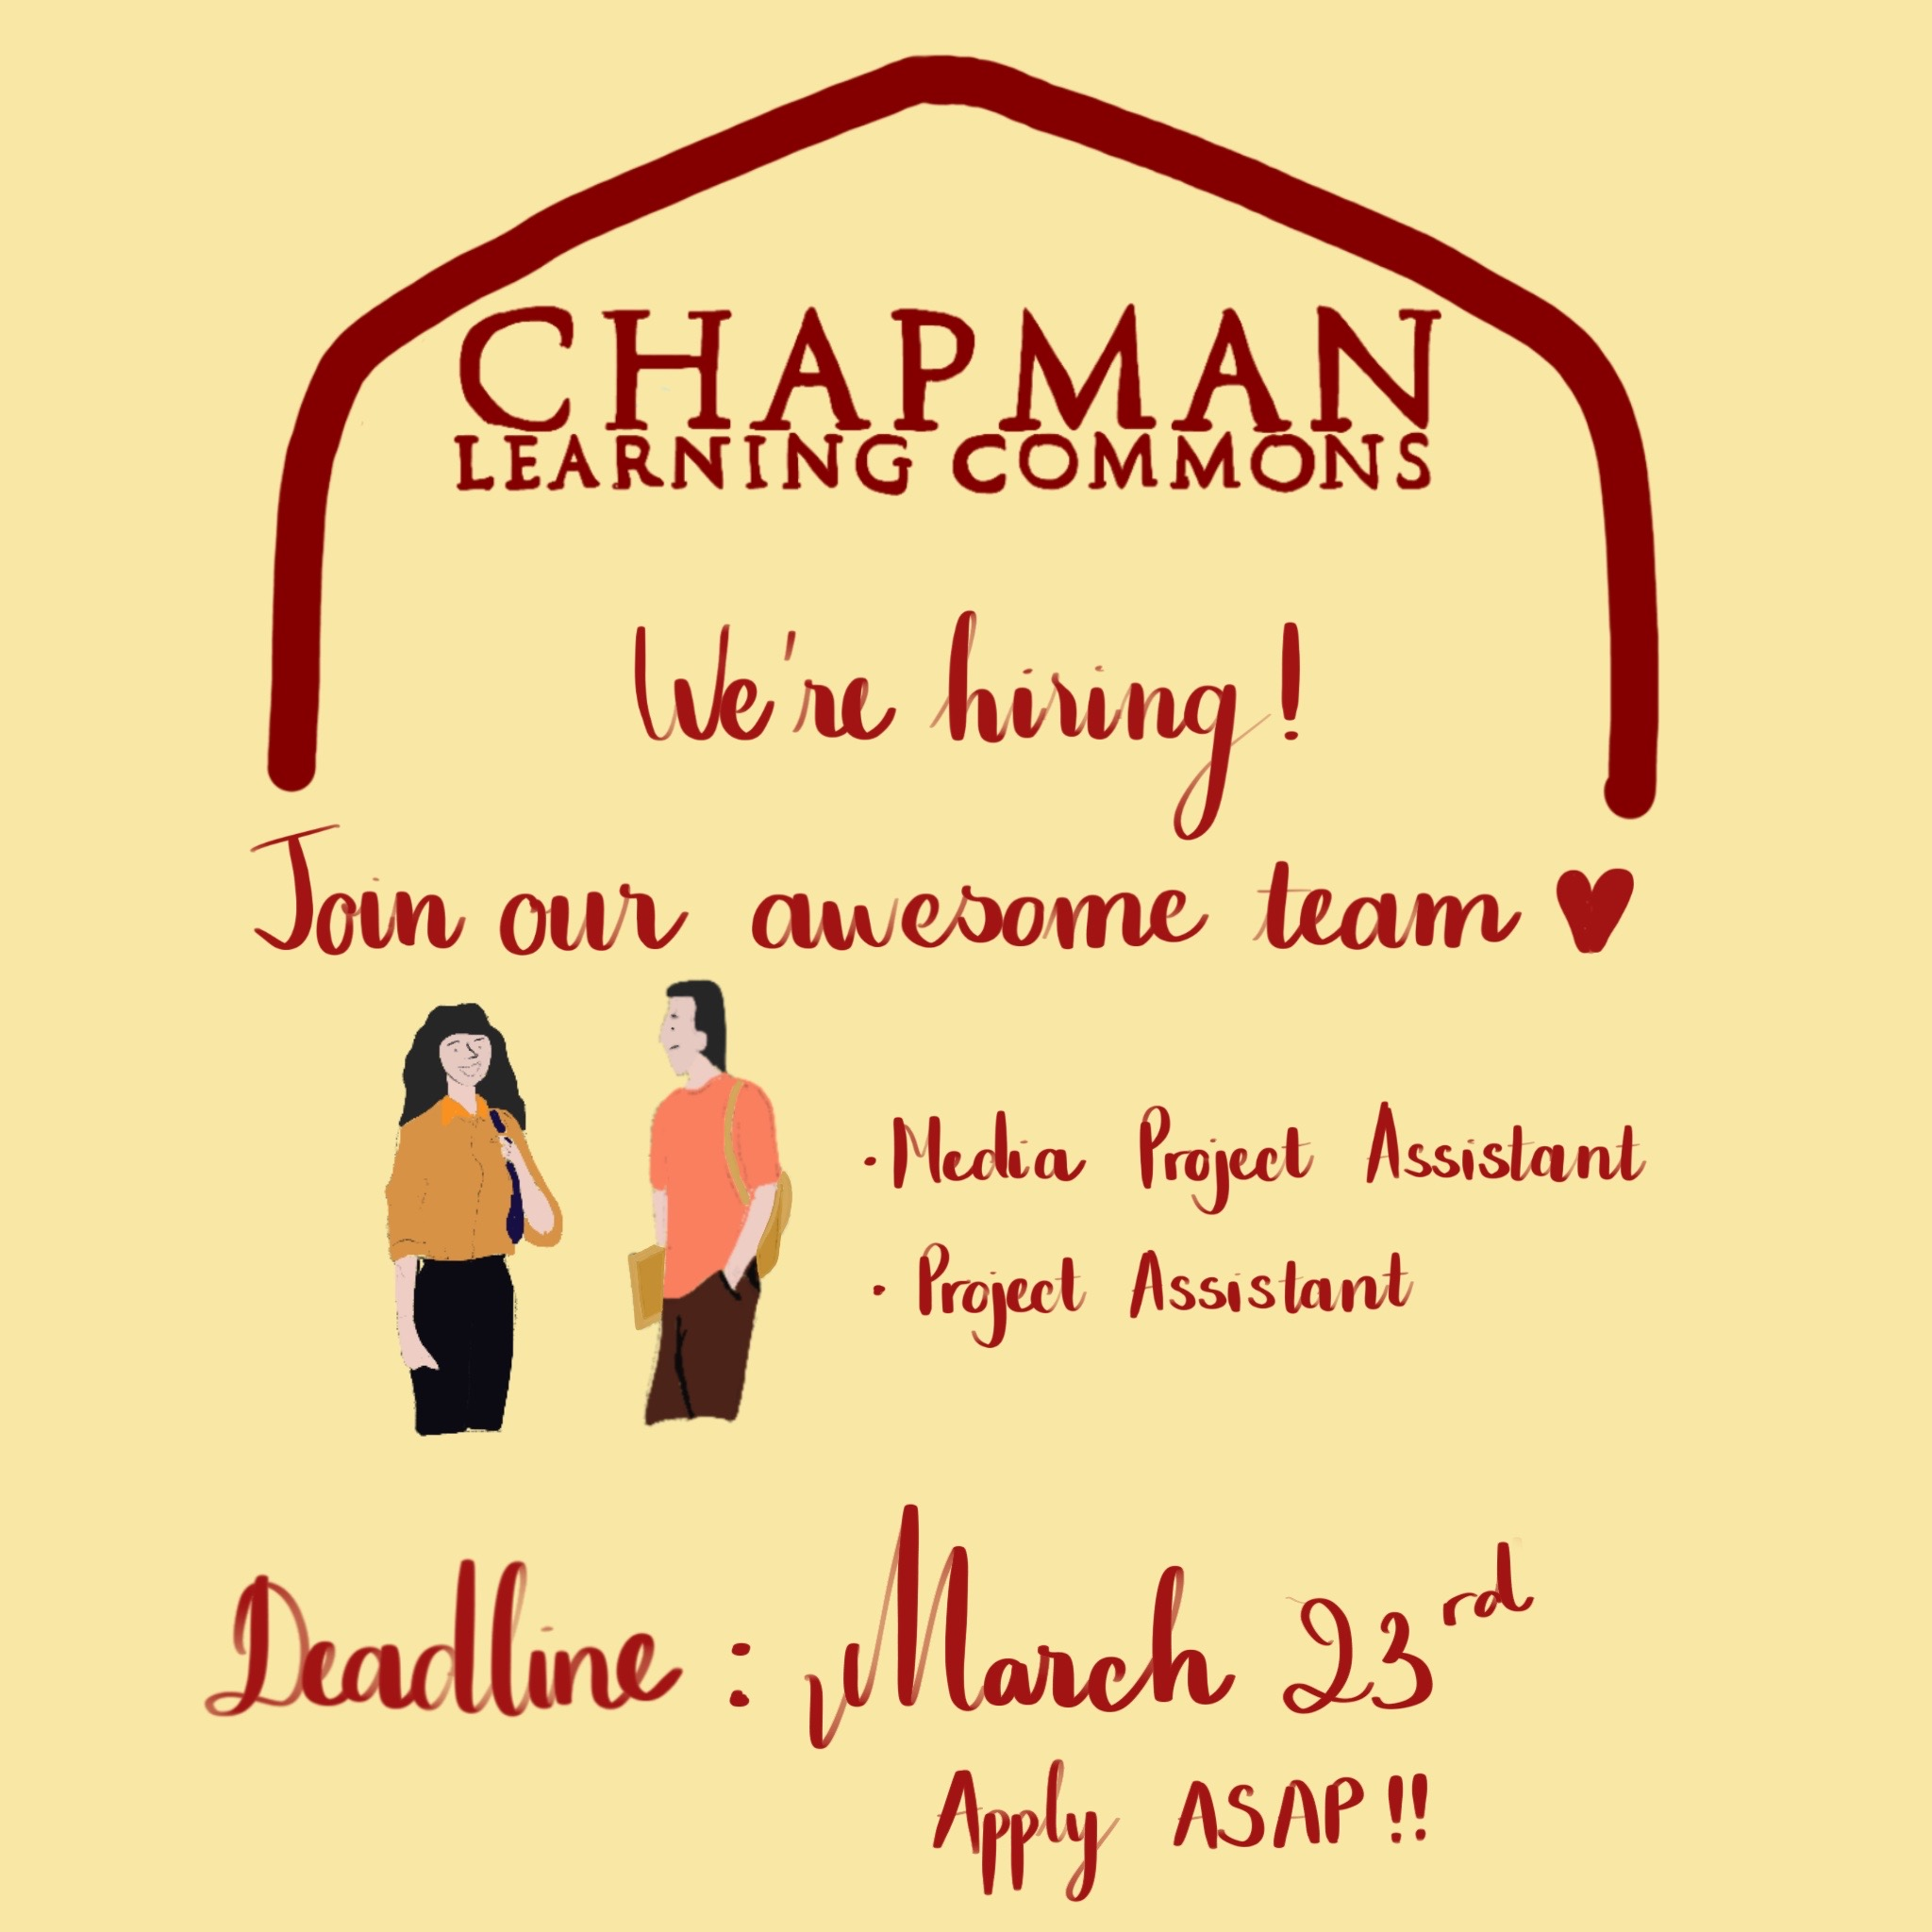 Chapman Learning Commons is Hiring!